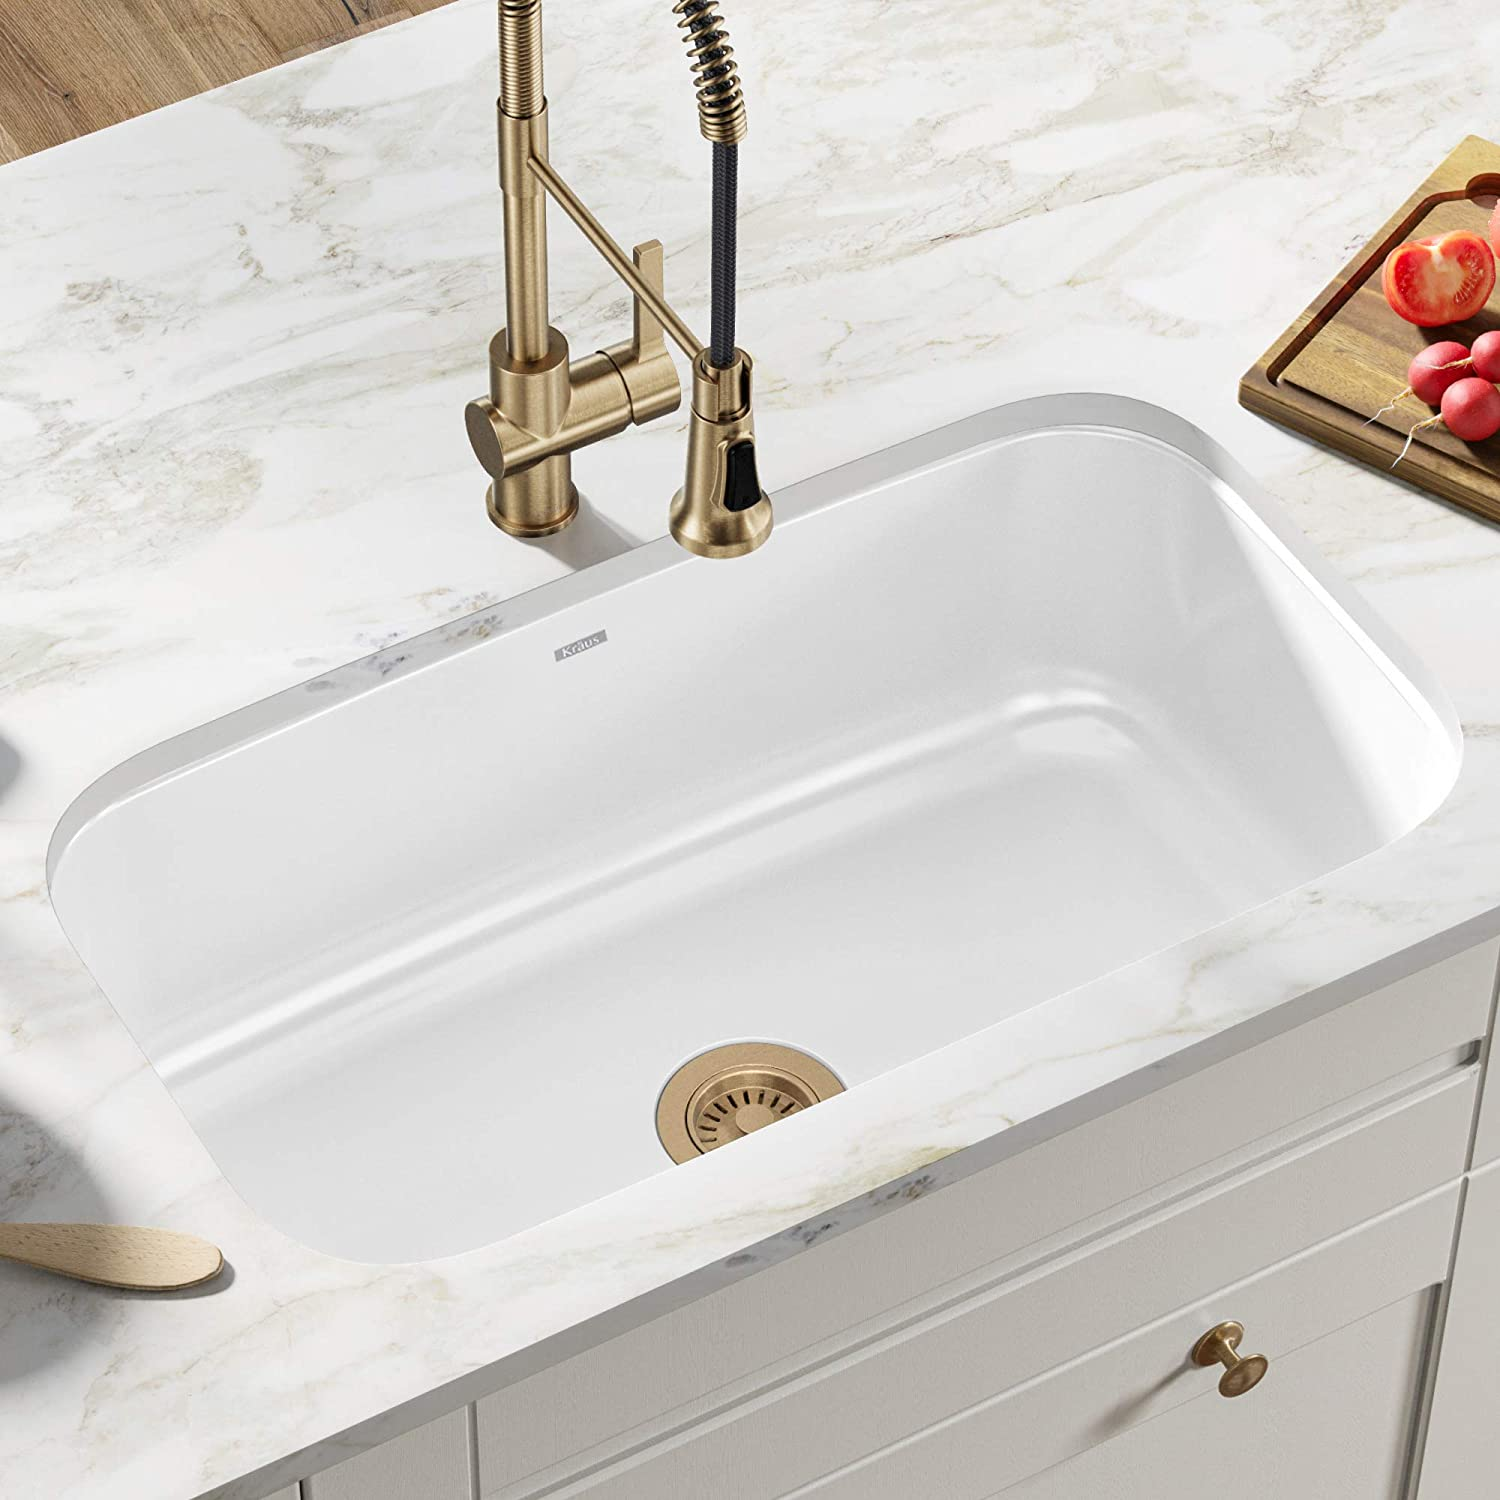 Kraus Single Bowl Kitchen Sink, 31.5″